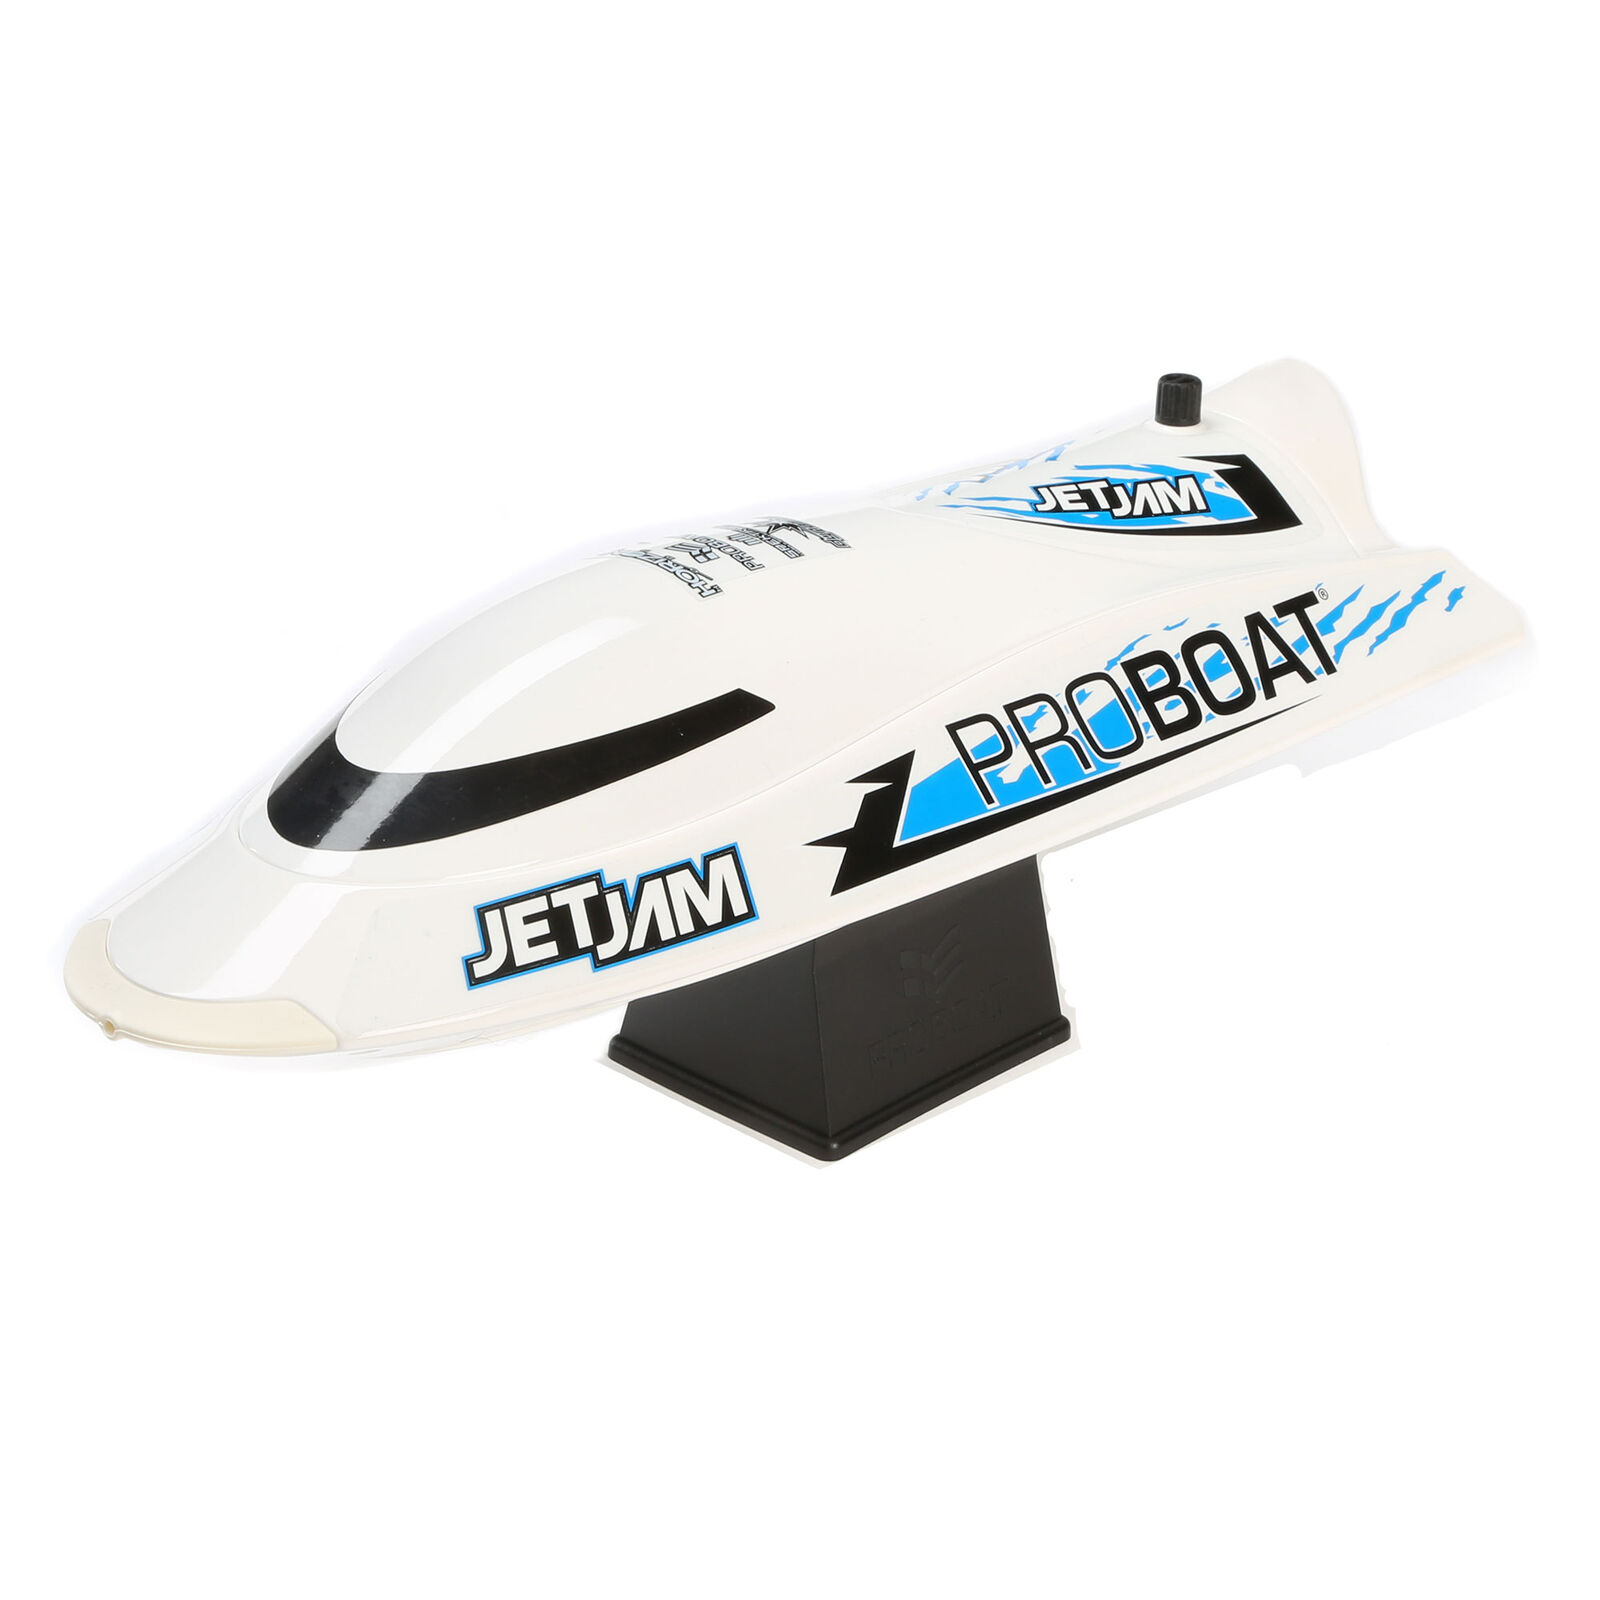 "Jet Jam 12"" Pool Racer Brushed RTR, White"